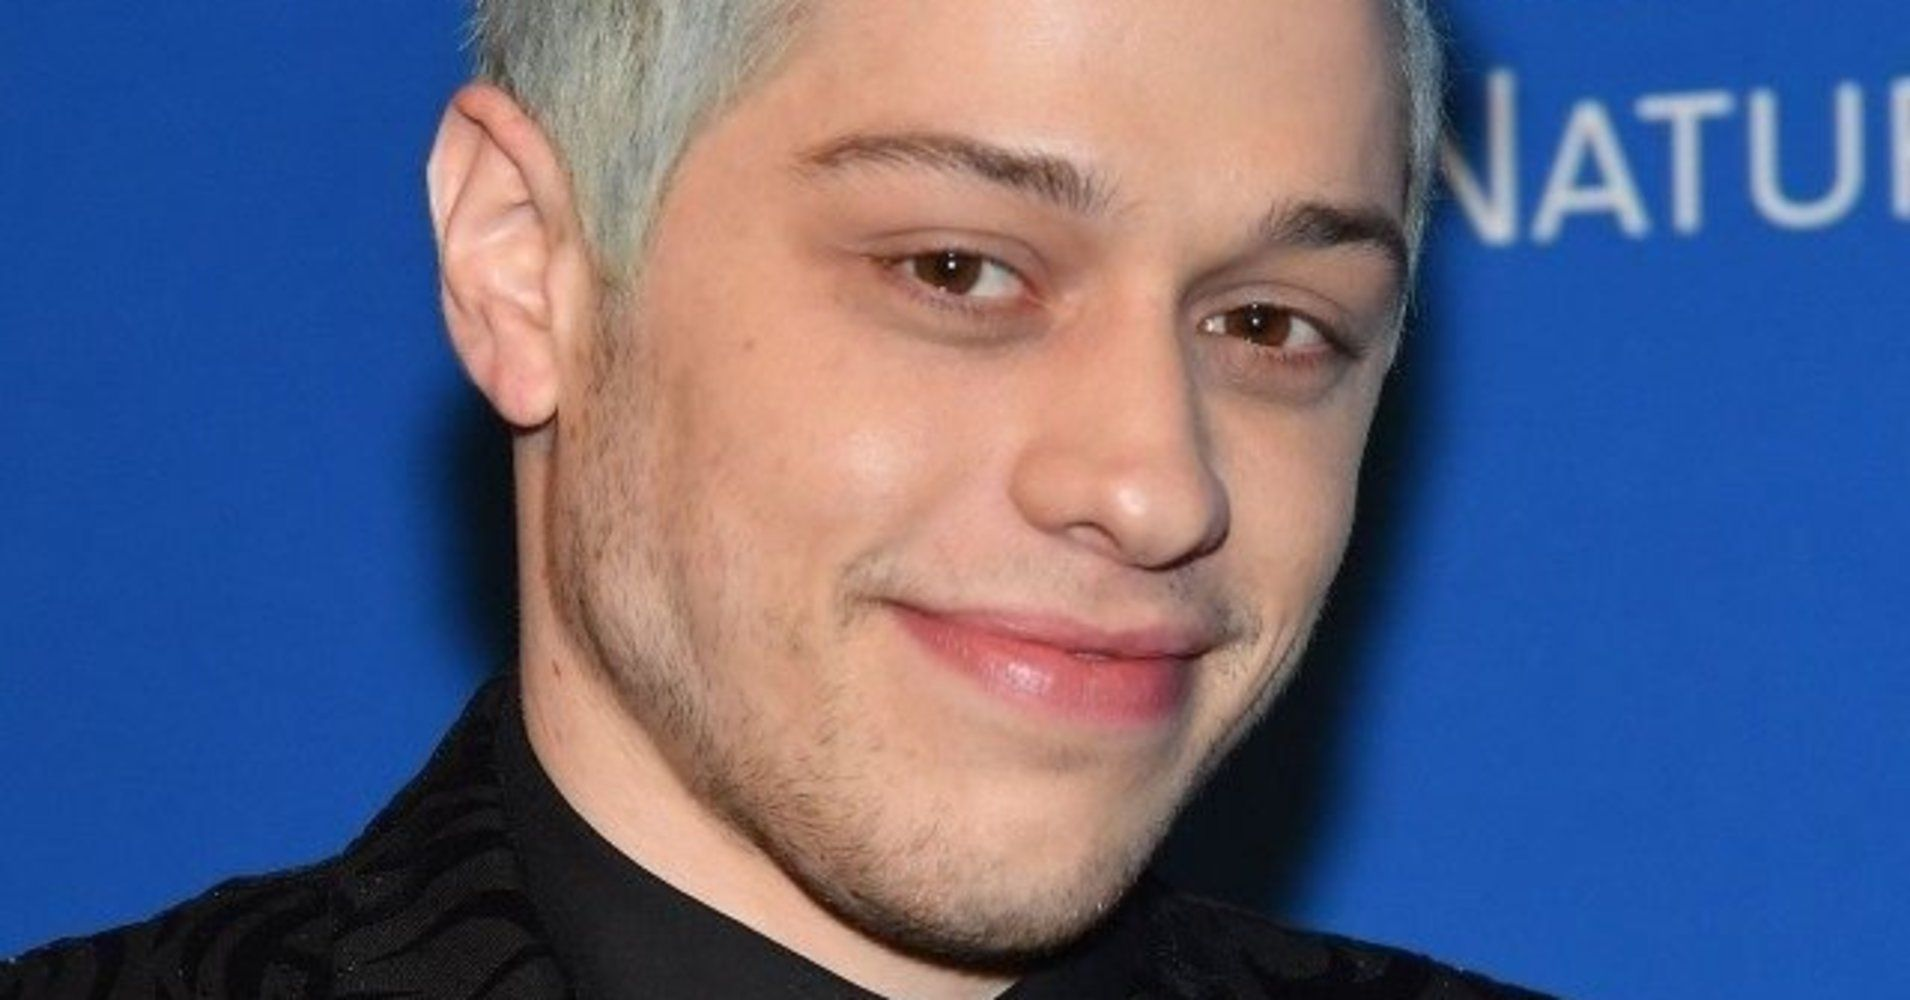 Pete Davidson's Got A Tattoo Of A New Lady On His Shoulder